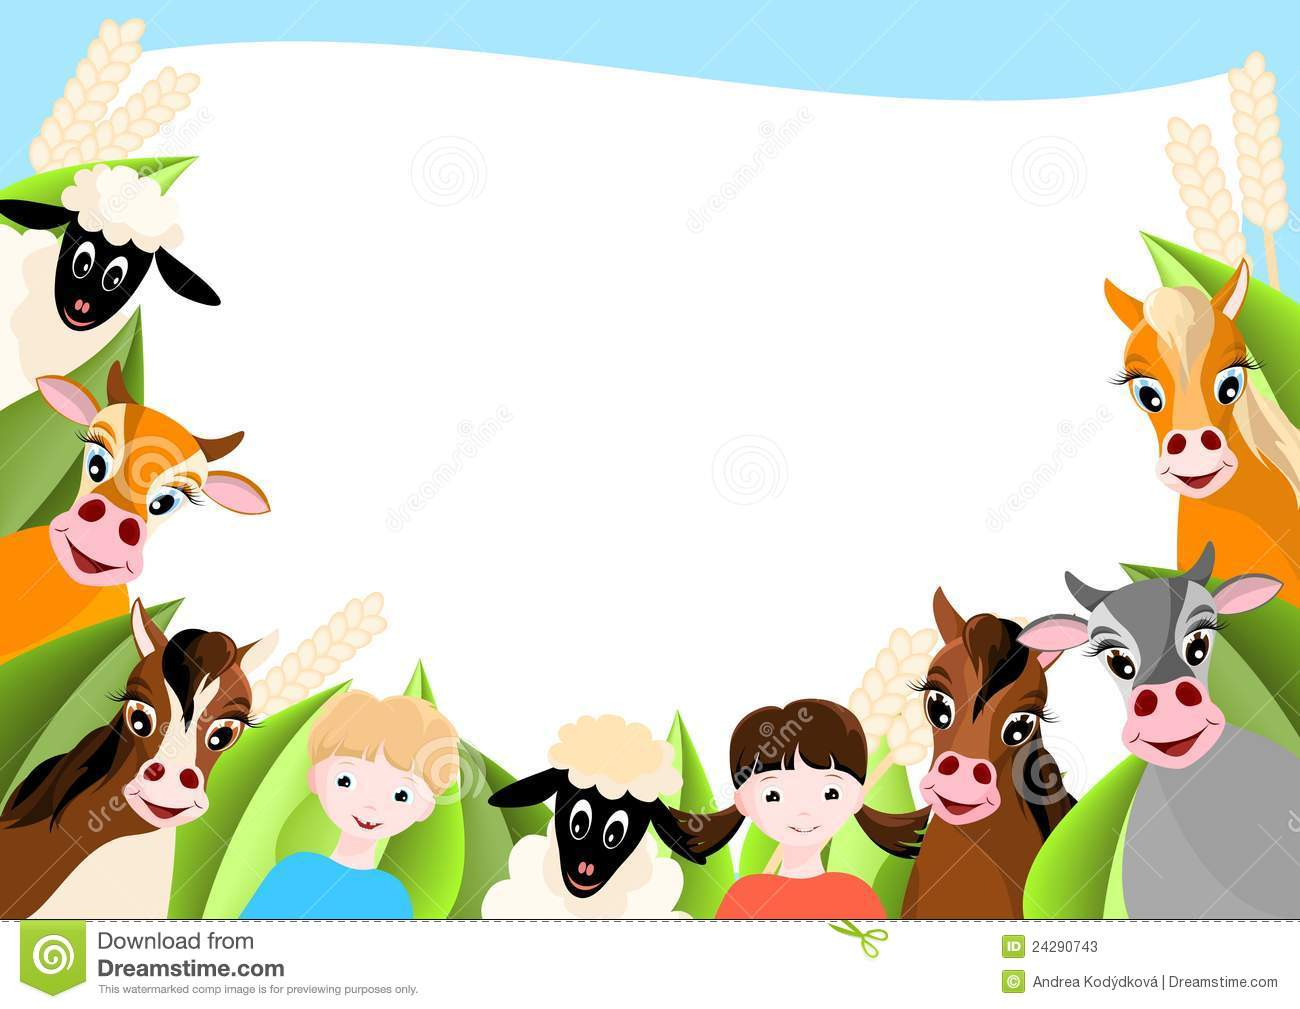 Animal background clipart 1 » Clipart Station.